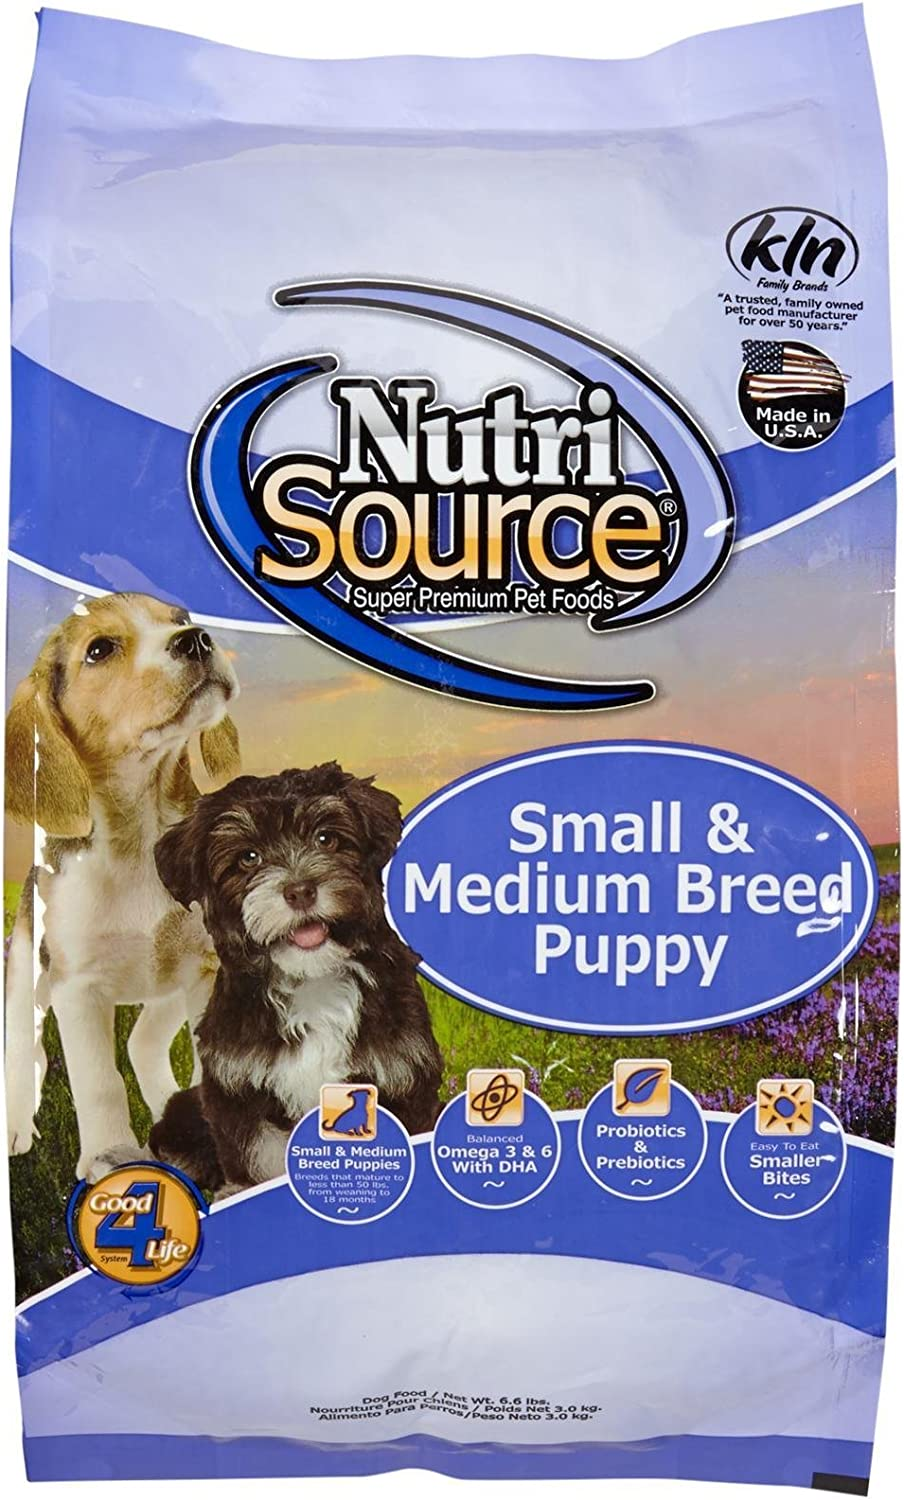 Tuffy's NutriSource Chicken and Rice Formula Breed Dry Puppy Food